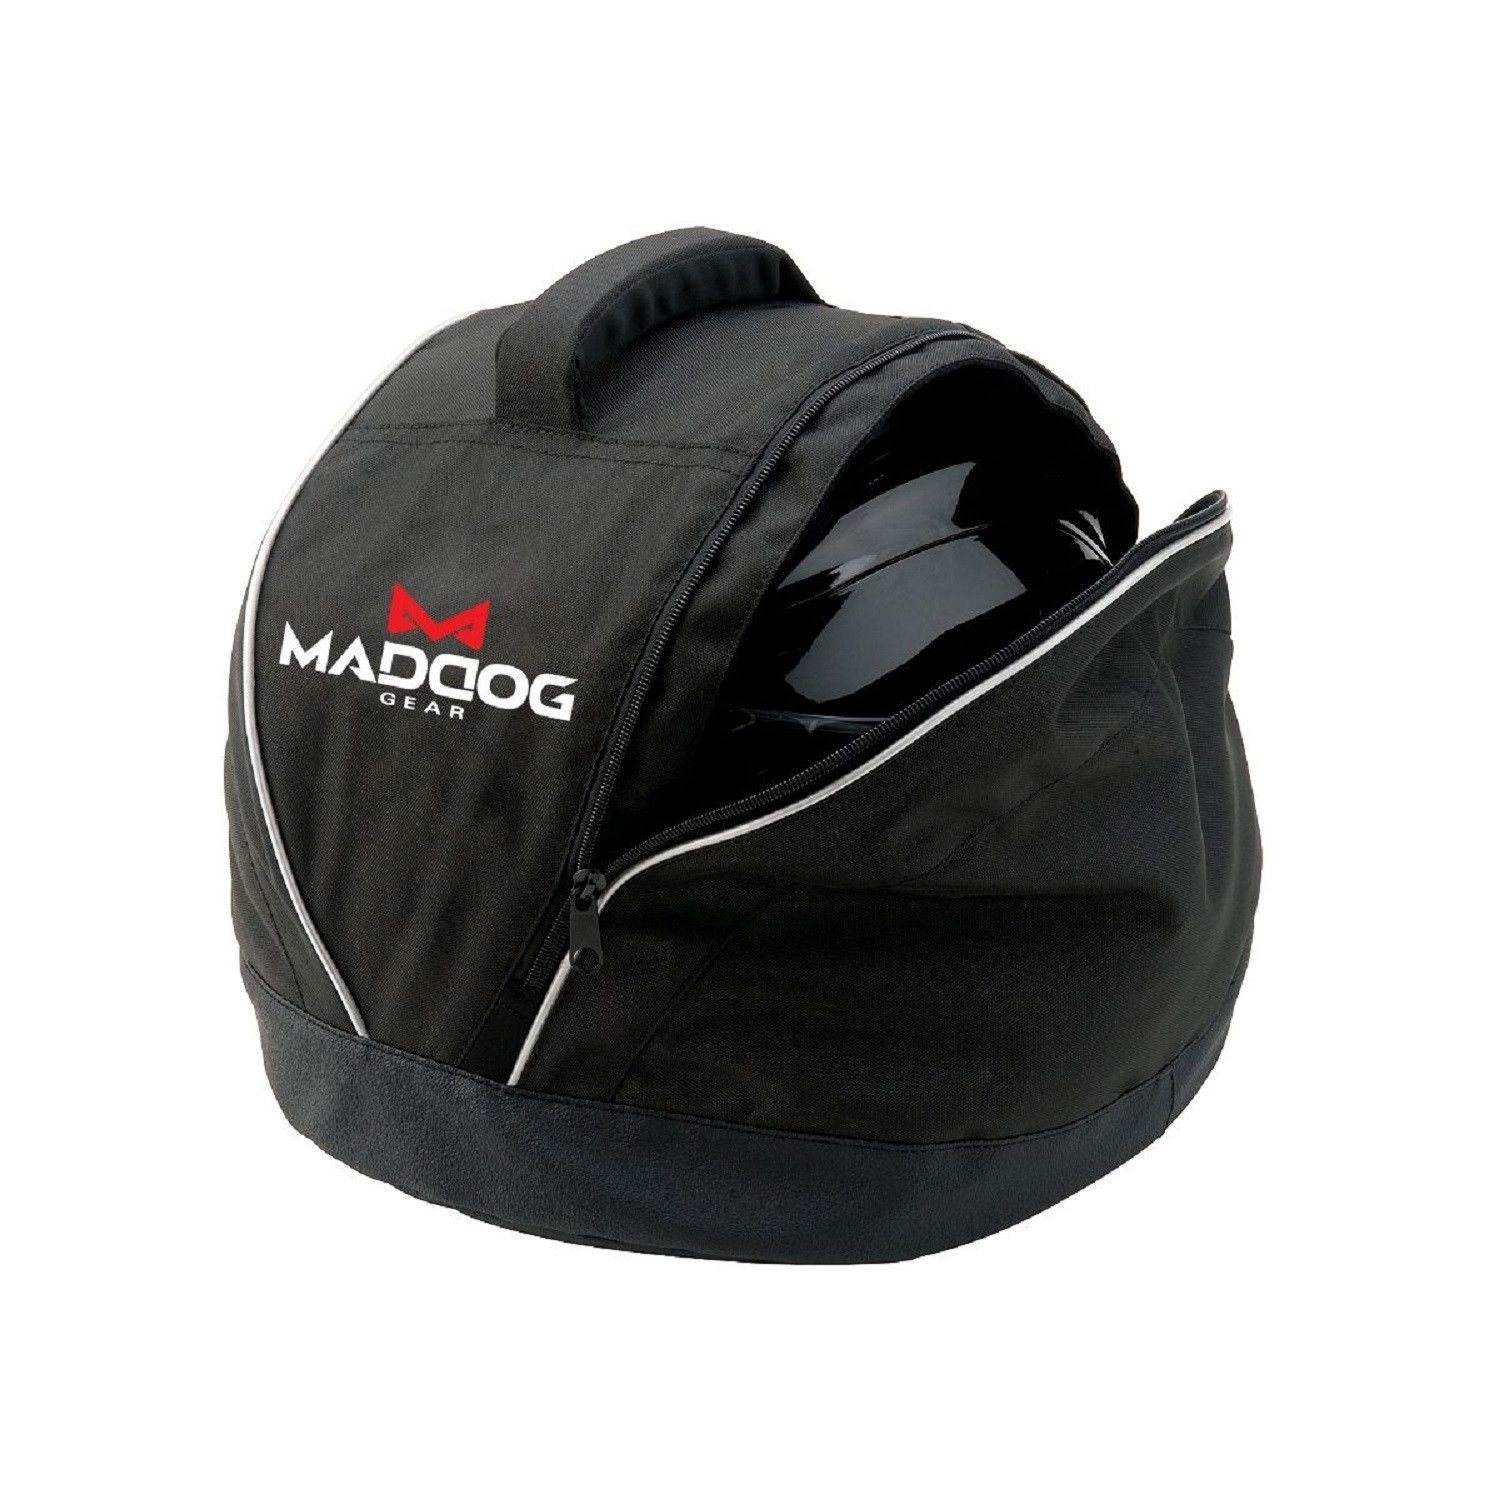 Maddog gear motorcycle helmet bag products motorcycles and helmets